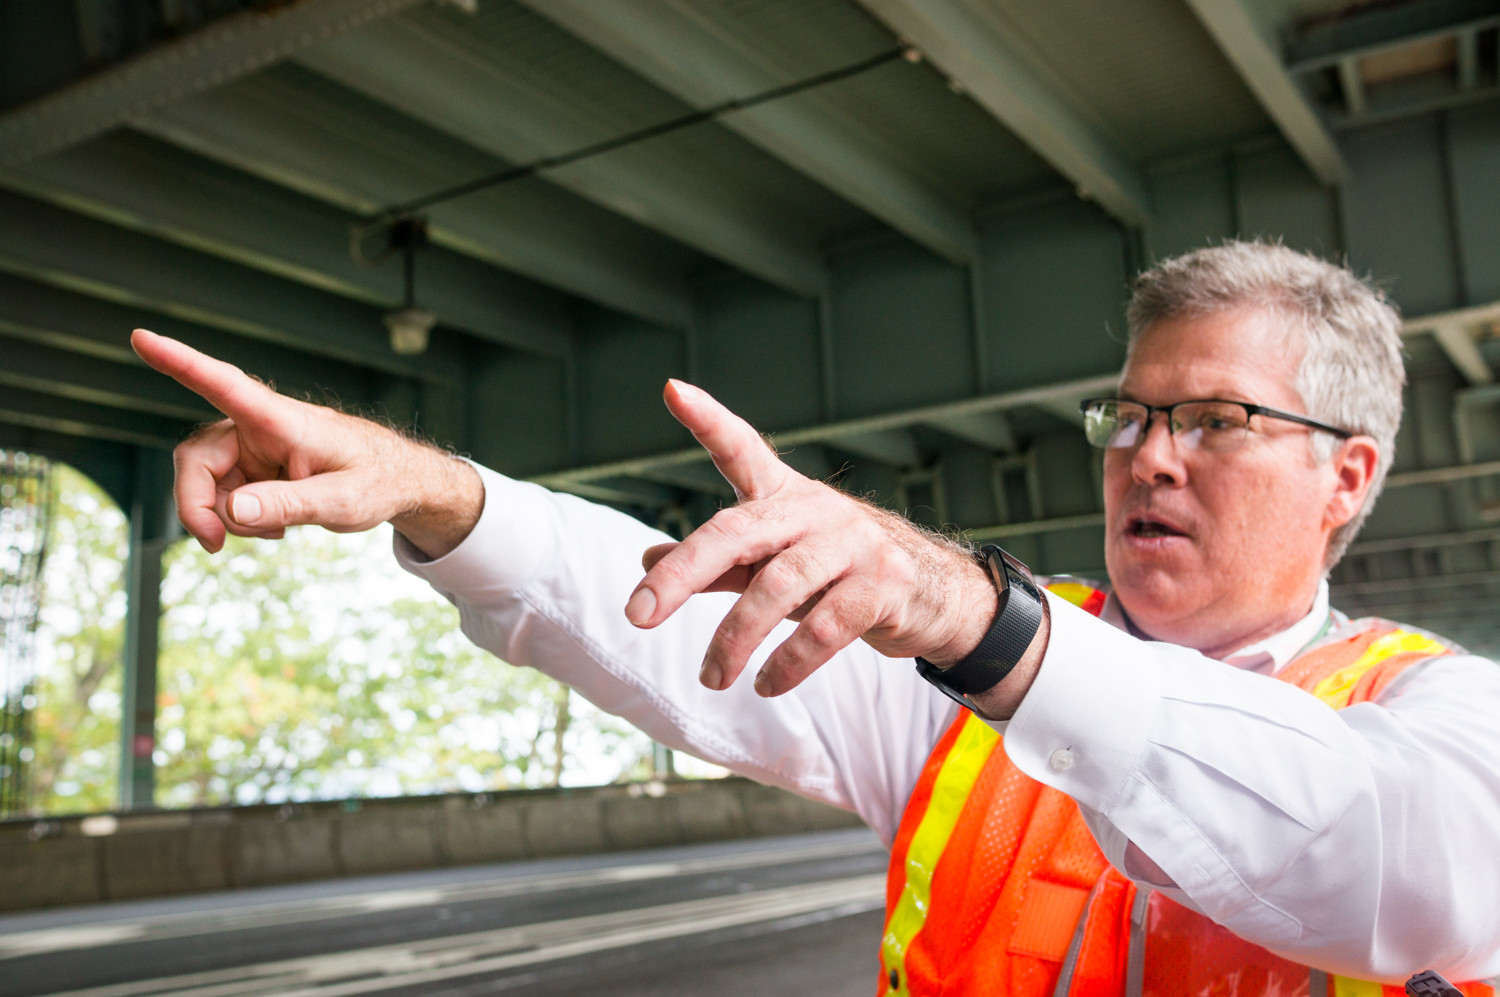 'It has a special place in my heart,' says Walter Hickey, deputy chief engineer for the Robert F. Kennedy and Henry Hudson bridges. 'It was my first assignment.' He bagan working at the Metropolitan Transportation Authority 20 years ago when the MTA initially began planning improvement to the bridge.